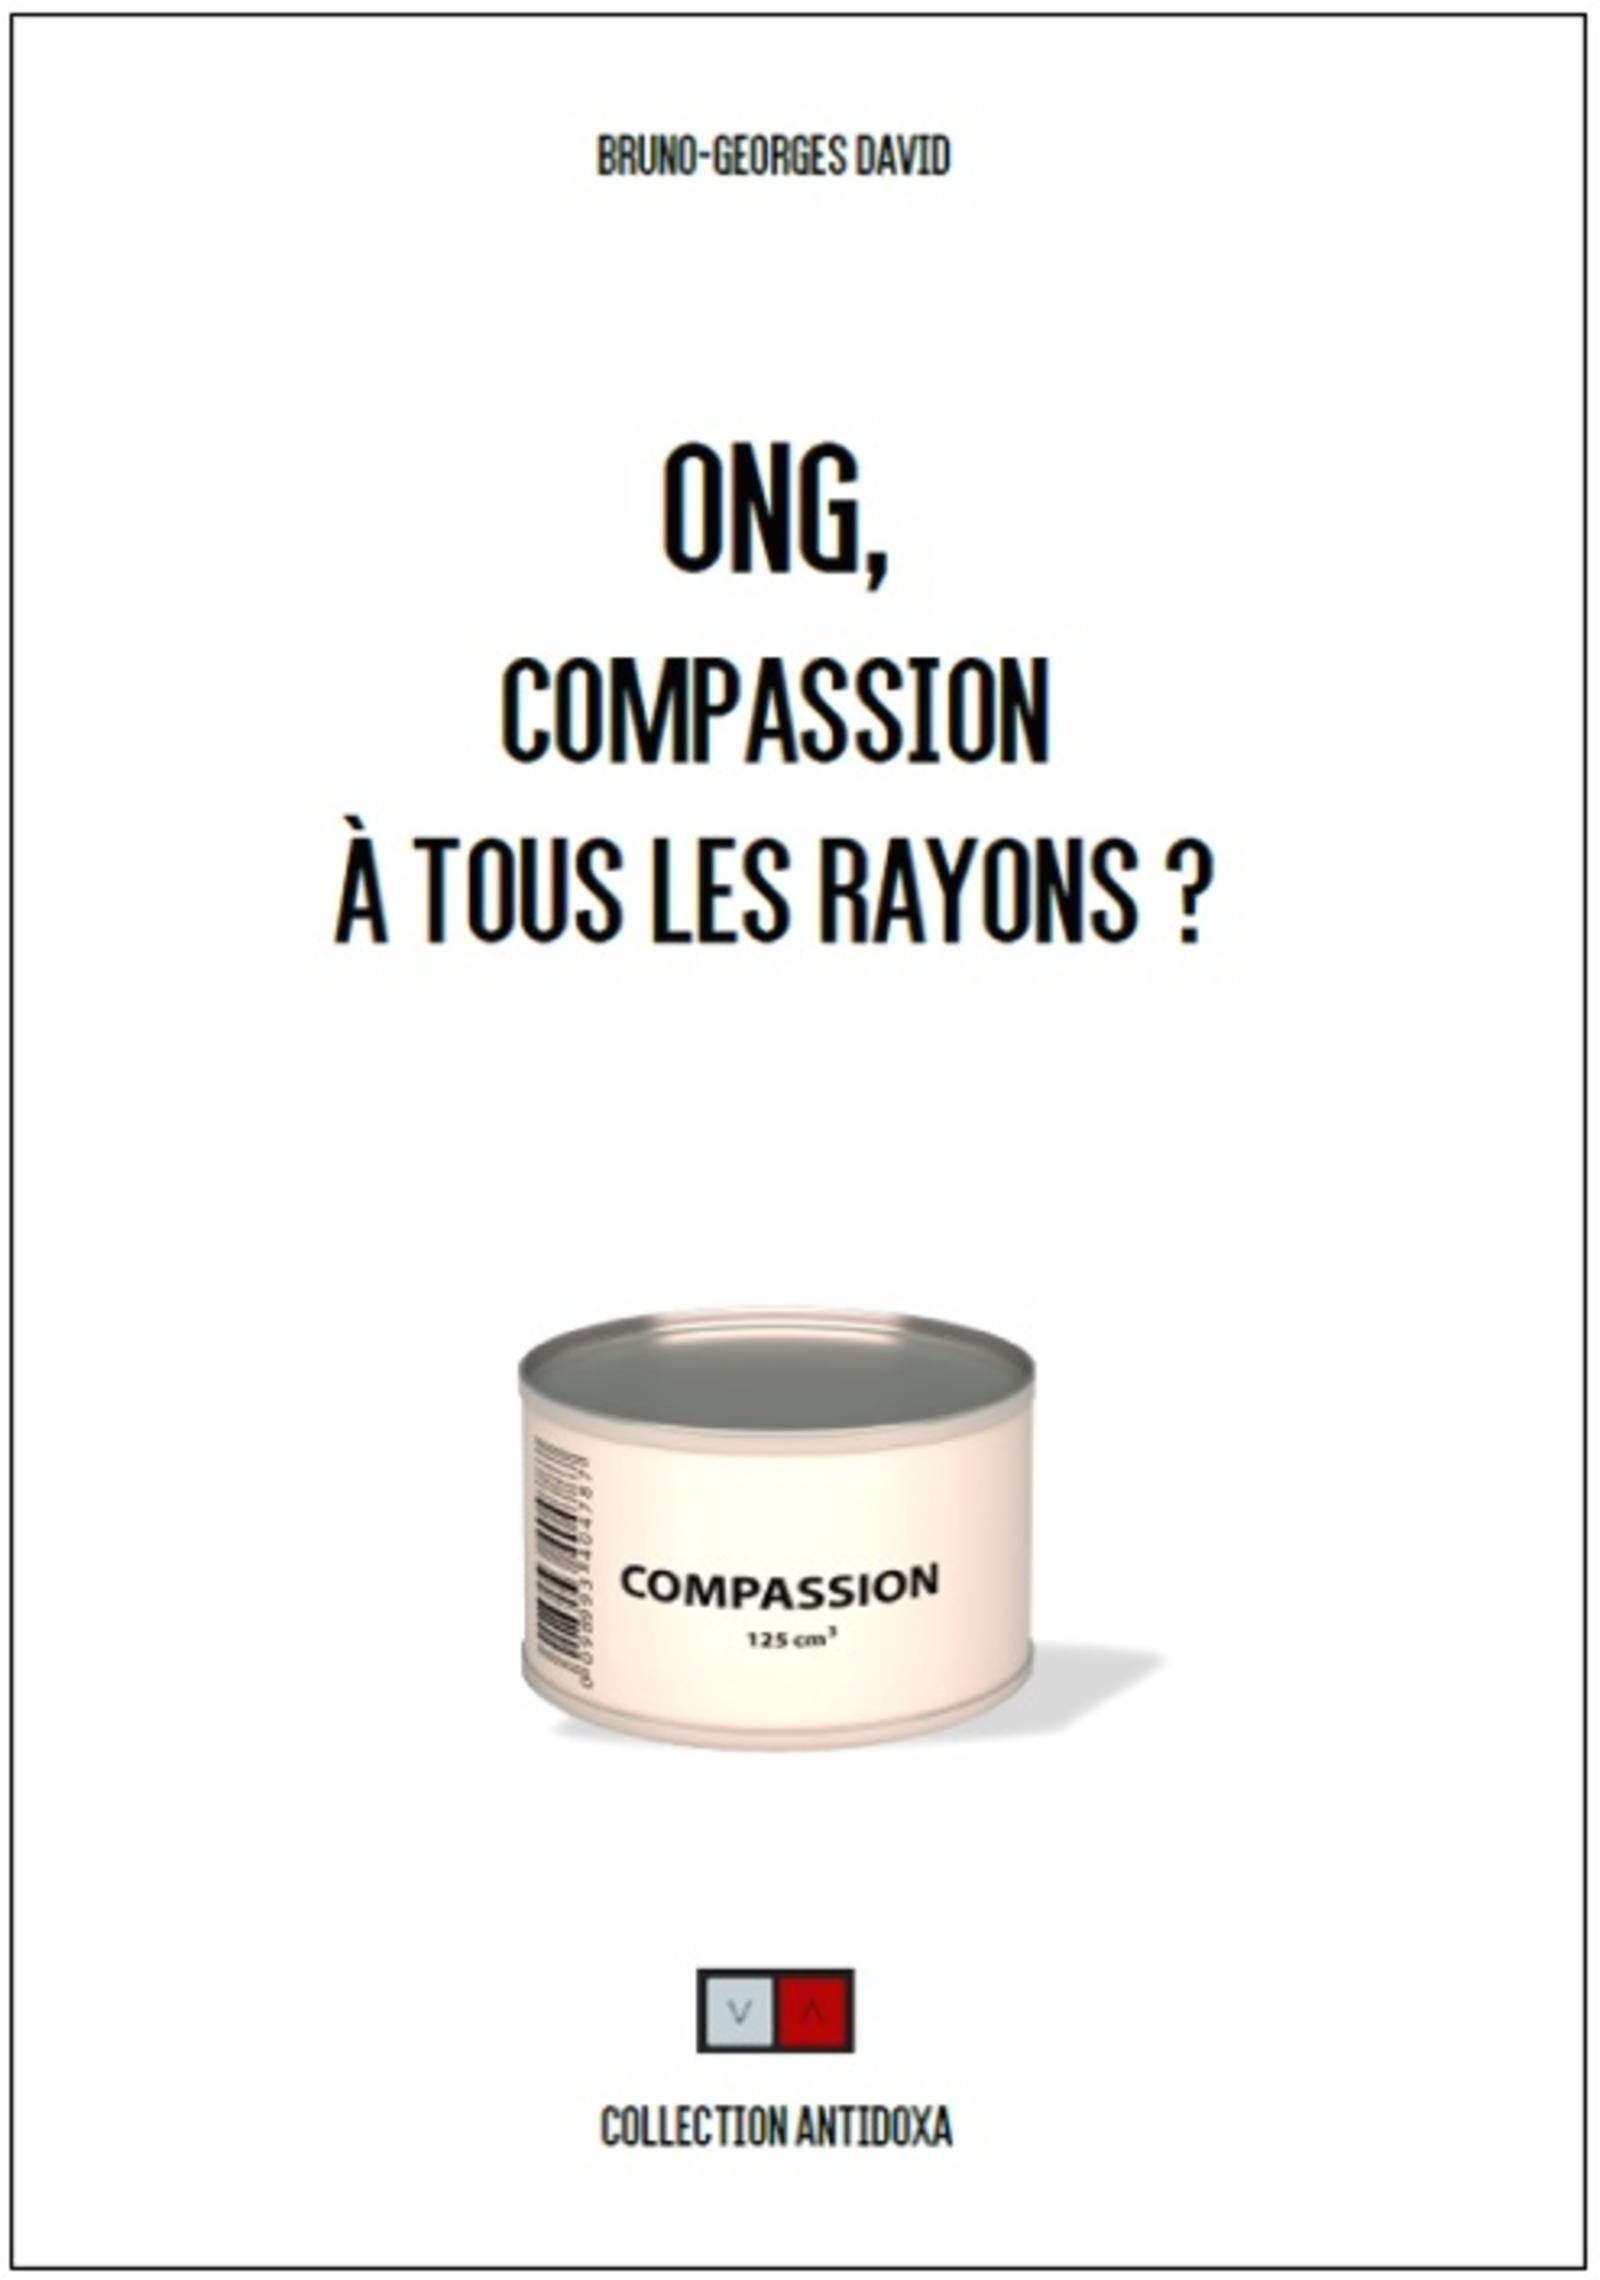 ONG, COMPASSION A TOUS LES RAYONS ?